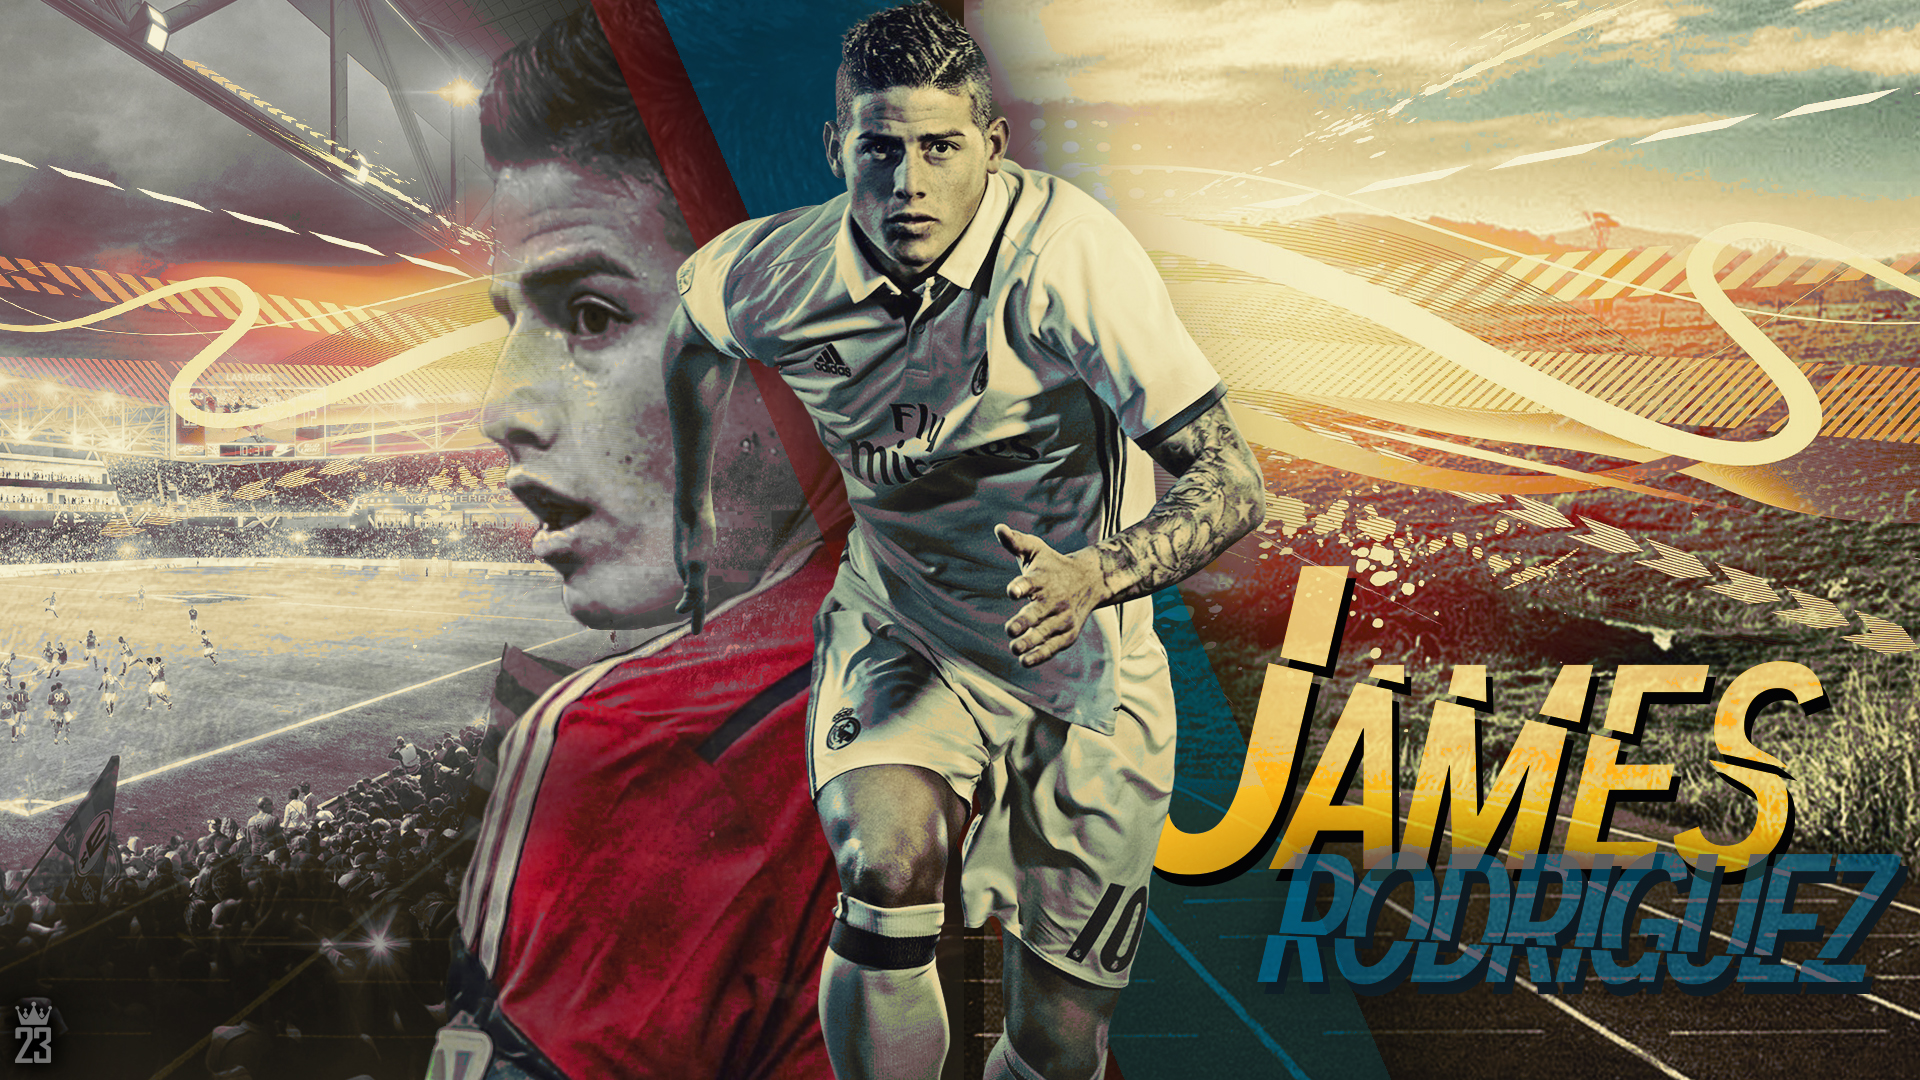 James rodriguez hd wallpaper by kerimov23 on deviantart - James rodriguez wallpaper hd ...